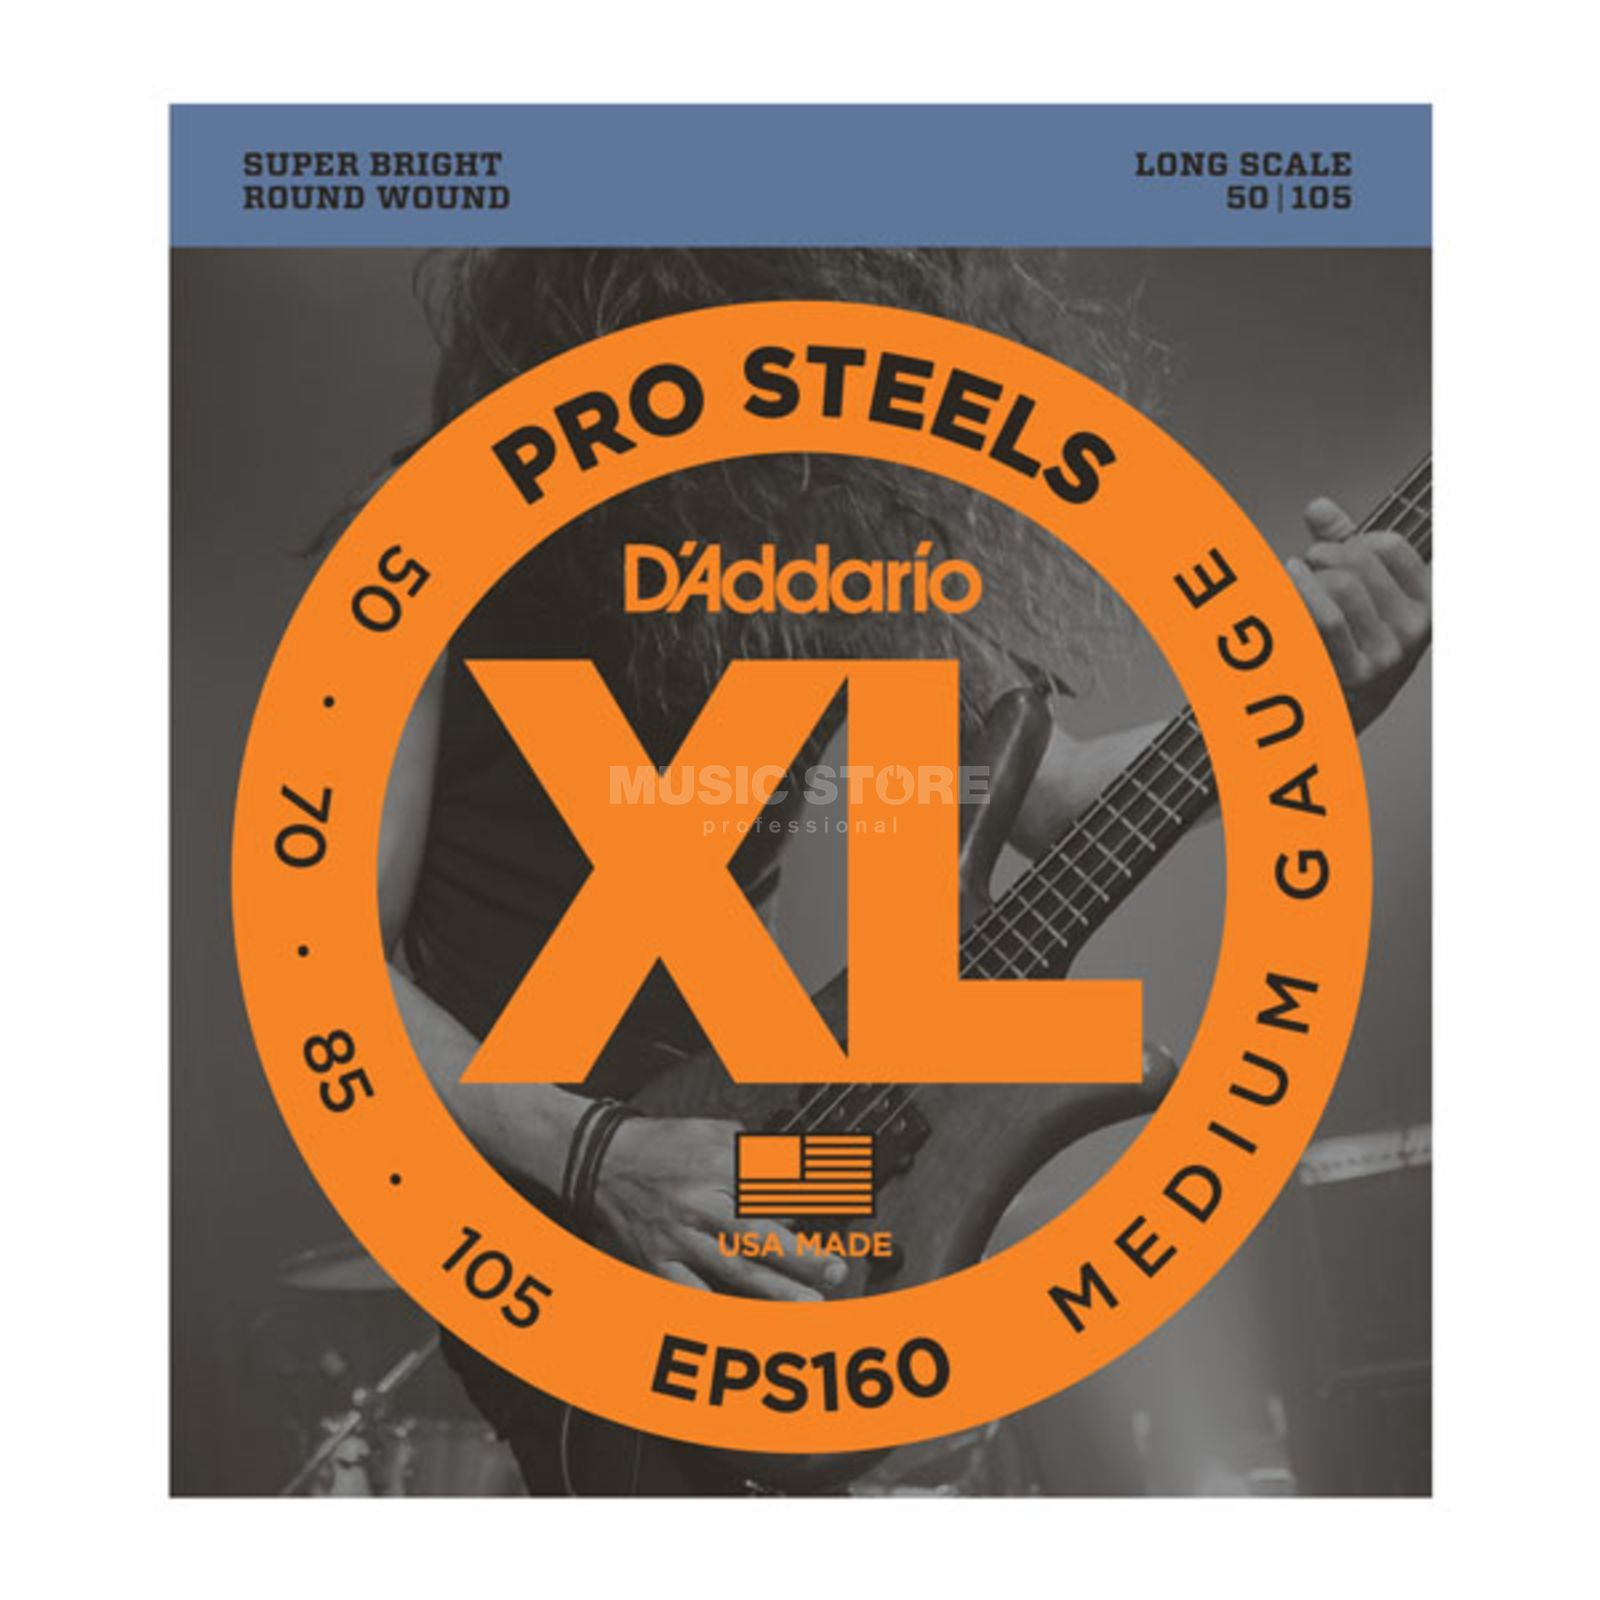 D'Addario Bass Strings Pro Steels 50-105 50-70-85-105, EPS160 Produktbillede